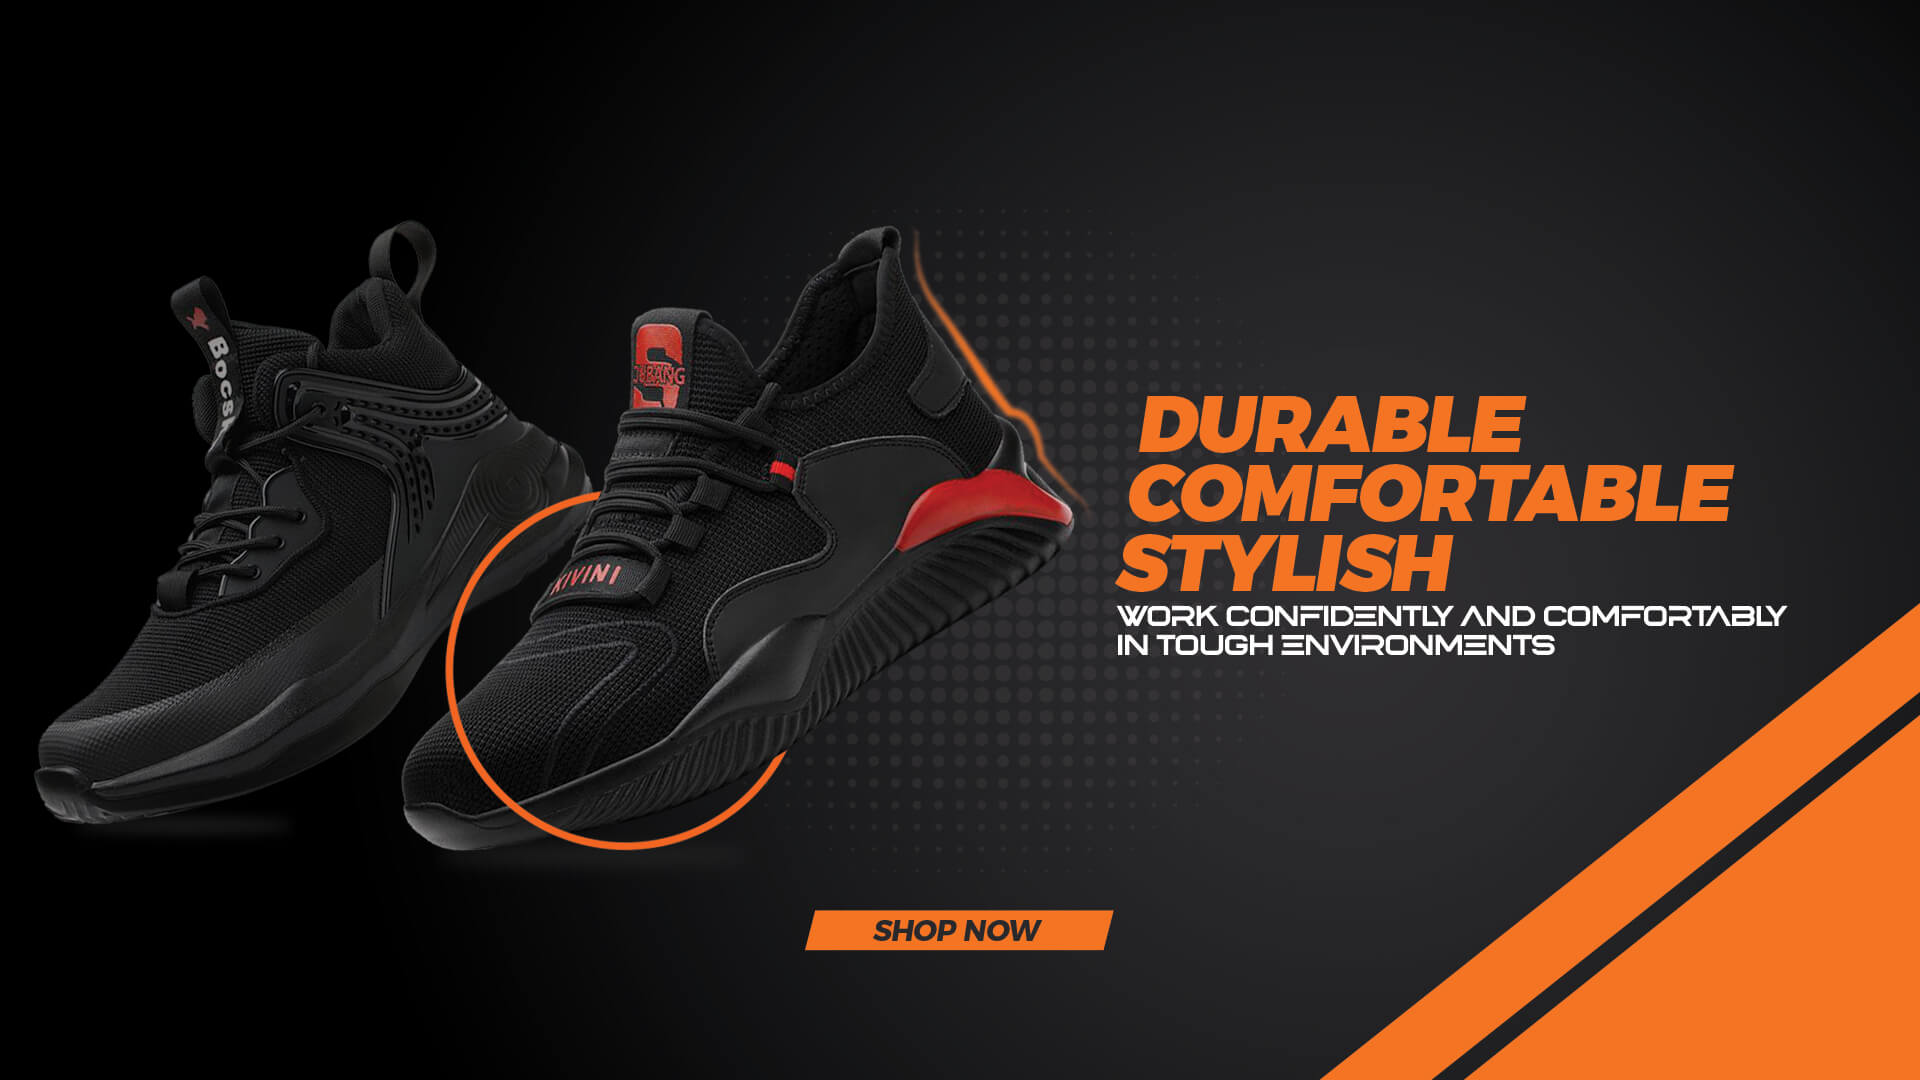 Maven Safety Shoes Are Durable, Comfortable & Stylish